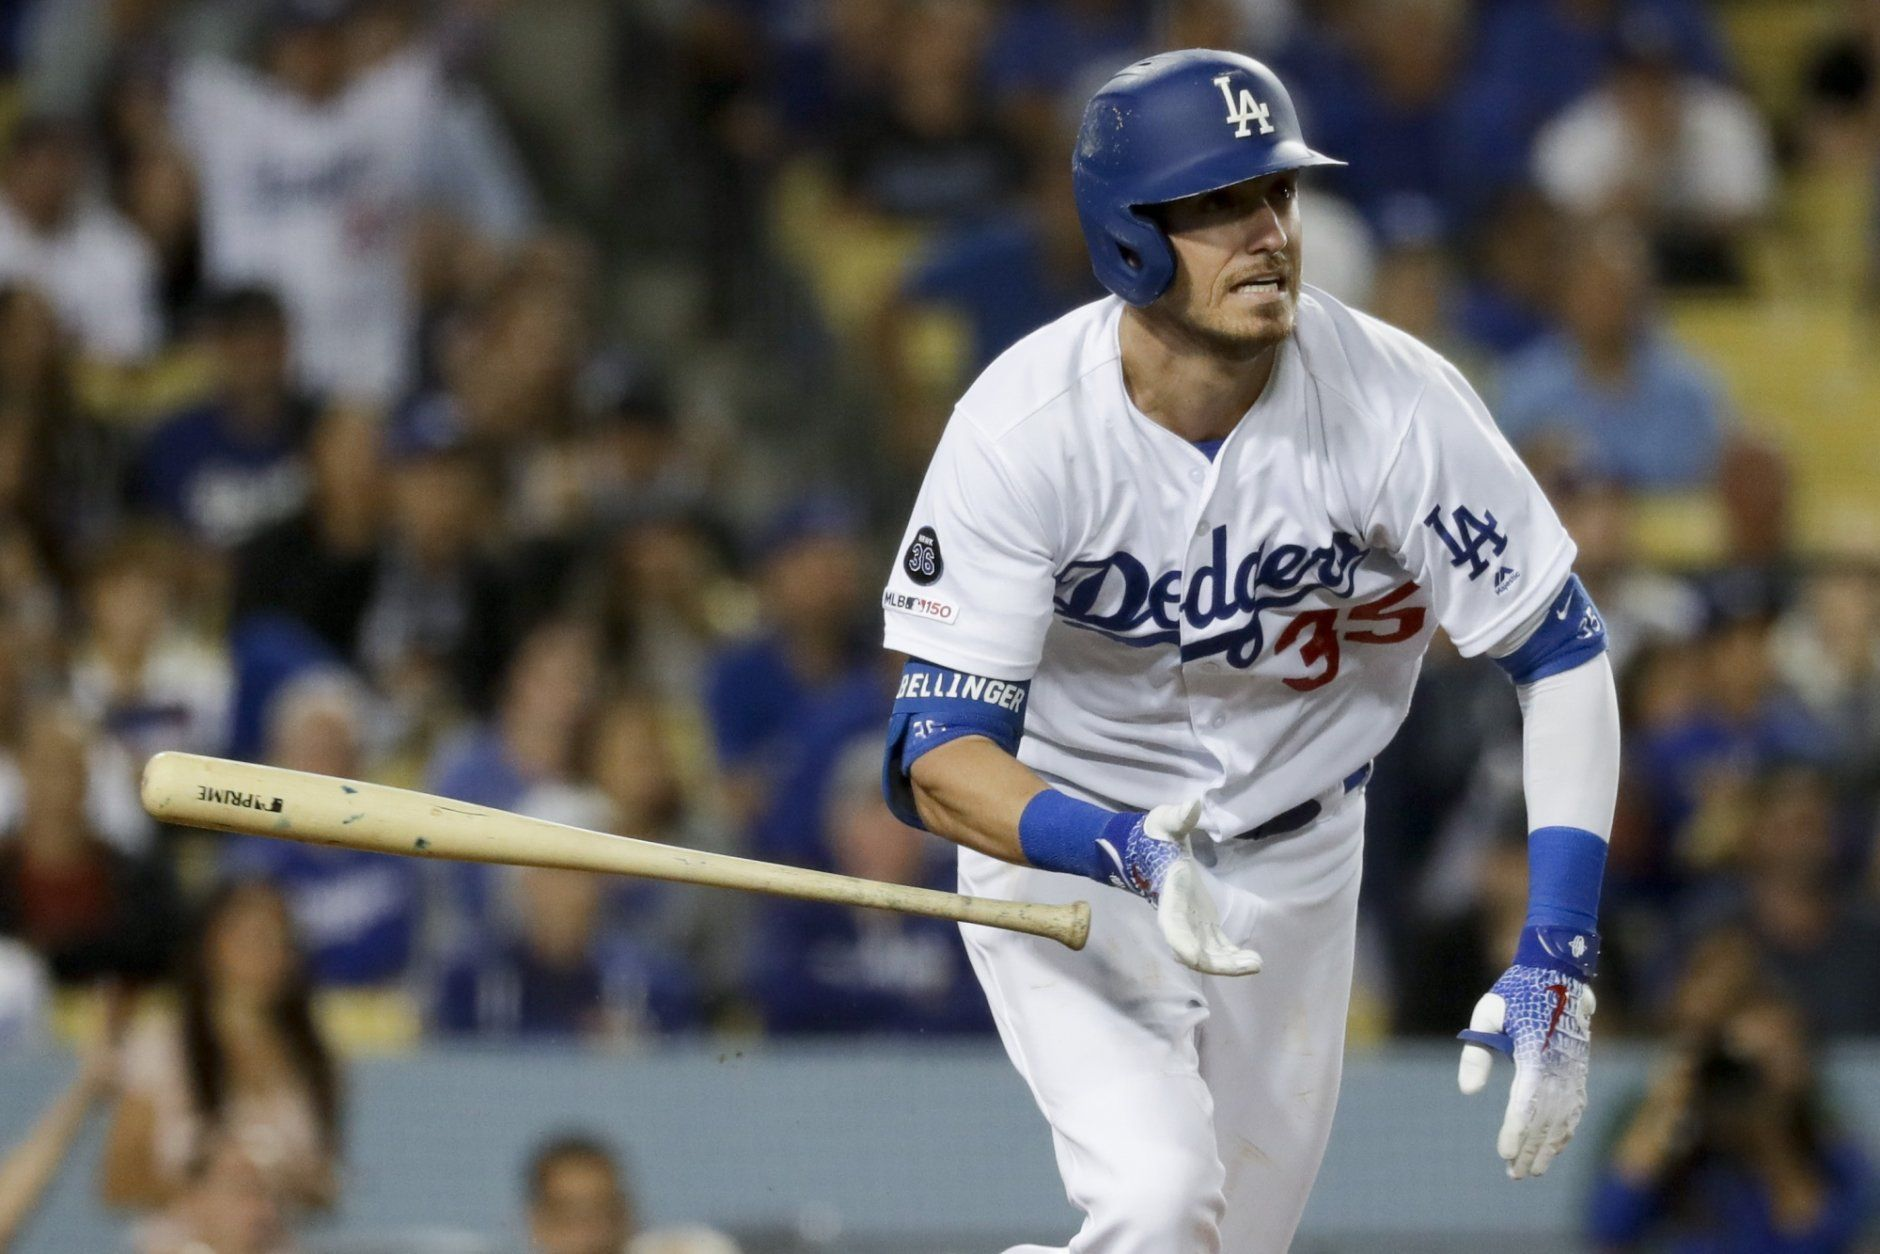 <p><strong>National League MVP</strong></p> <p>Cody Bellinger: 100</p> <p>Christian Yelich: 97.68</p> <p>Anthony Rendon: 92.81</p> <p>Ronald Acuña: 89.95</p> <p>Pete Alonso: 88.39</p> <p>Much like Strasburg, if these awards included the postseason, Anthony Rendon might have run away with this one. But after a torrid August and early September, he really struggled down the stretch of the regular season hitting just .185 with two home runs his final 20 games. That was enough that, despite Christian Yelich's season-ending injury, he wasn't able to close ground in the model. Rendon won the RBI race, but ceded the batting title to Yelich, all while Bellinger righted the ship over the season's final two weeks, and took home a Gold Glove to boot. This one could still be very close at the top, as injuries are always tough to weigh. But the model likes Bellinger.</p>